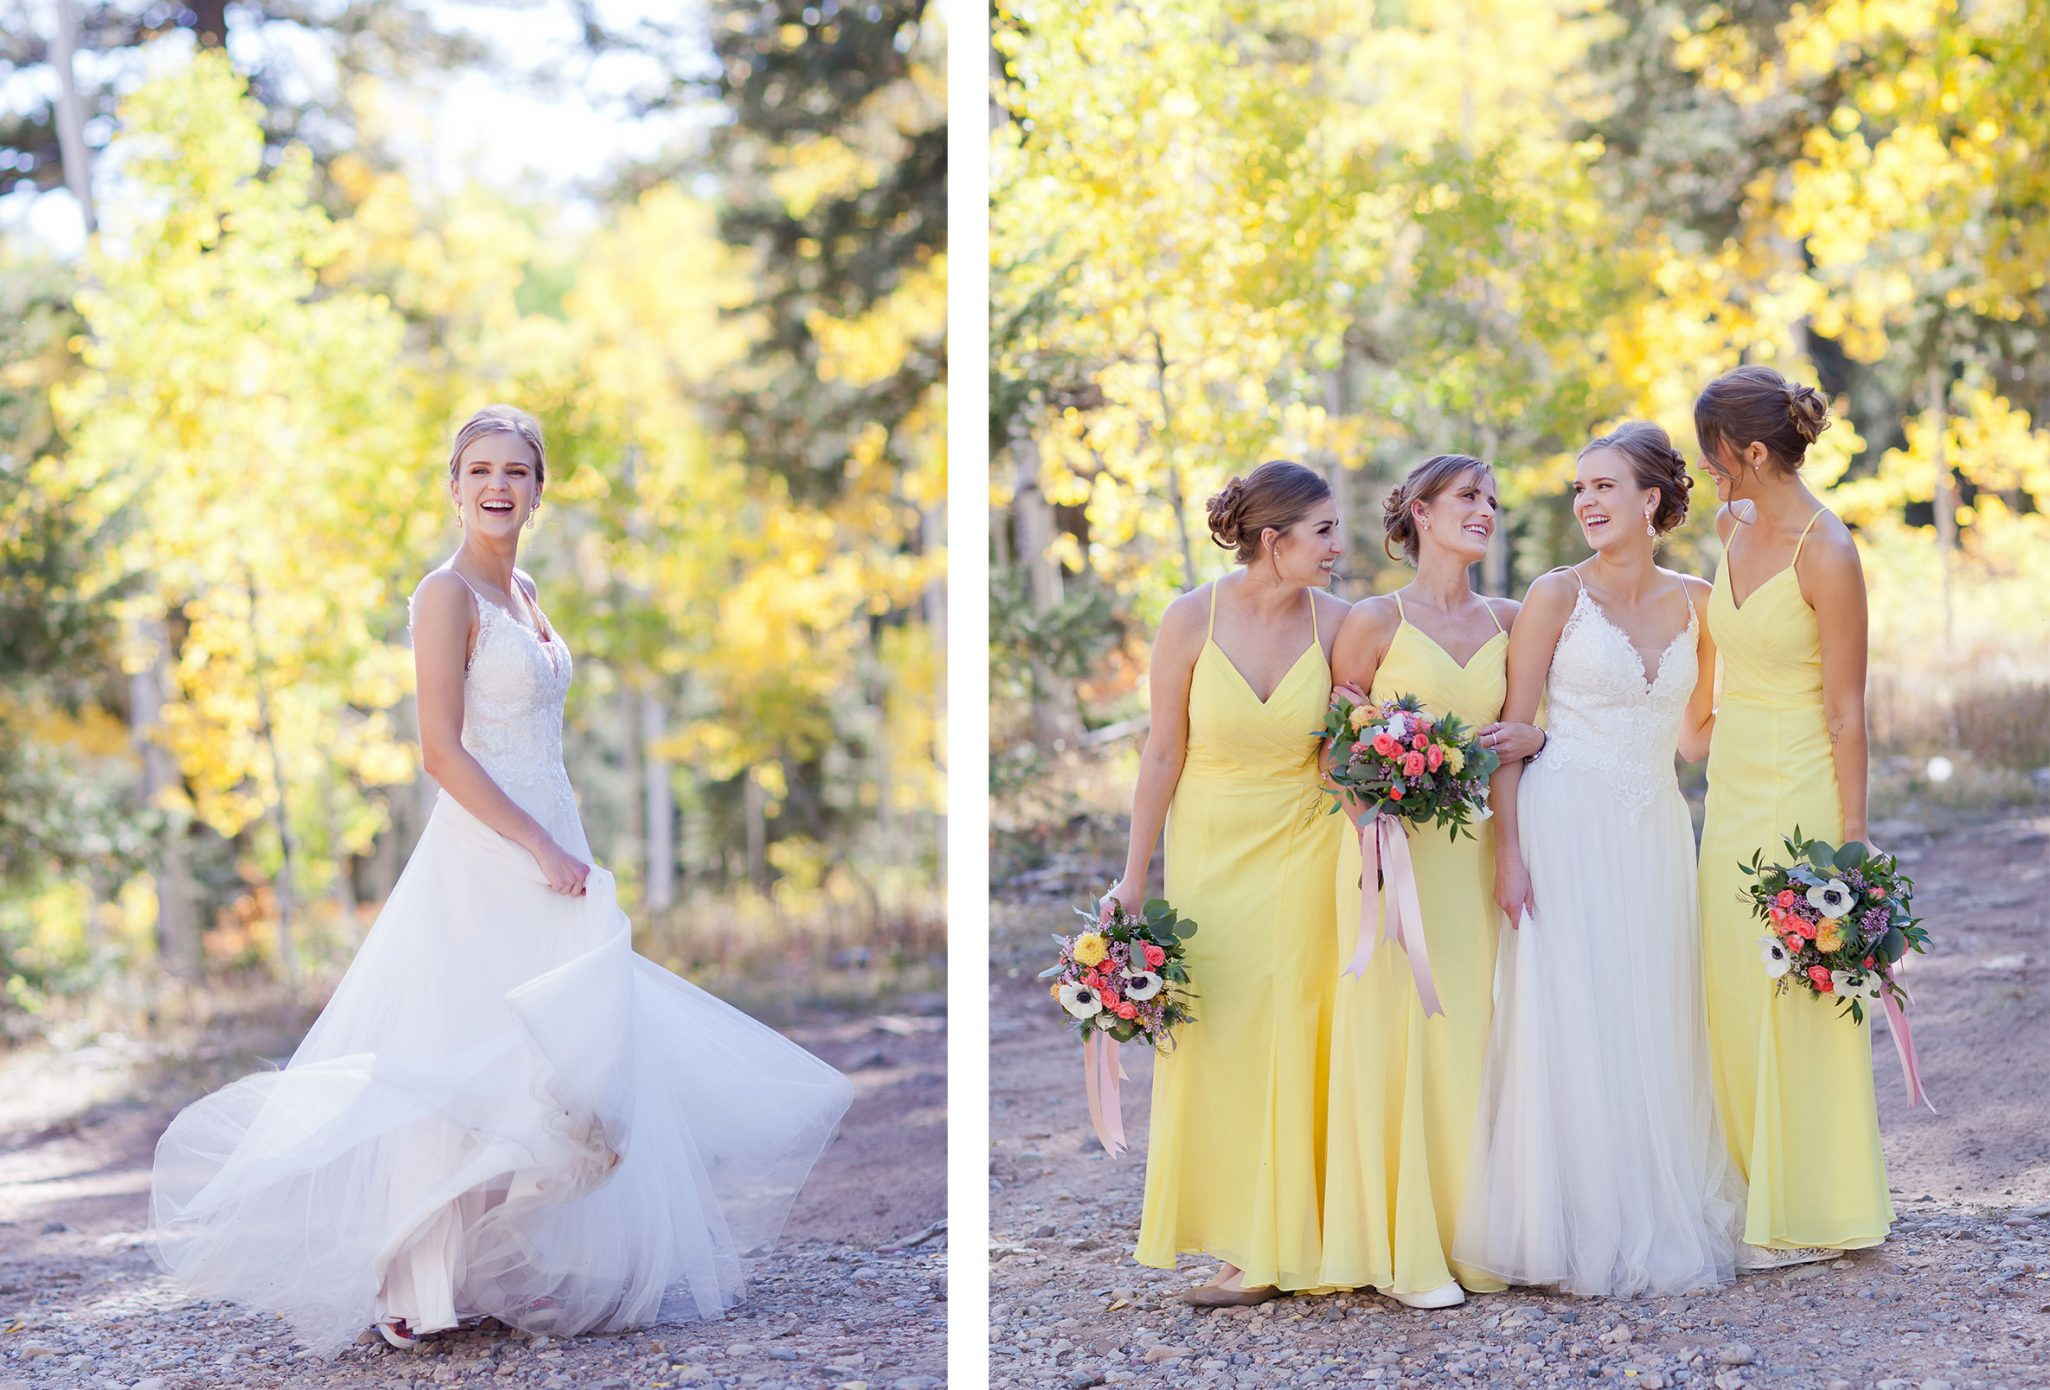 Bride Tribe in yellow